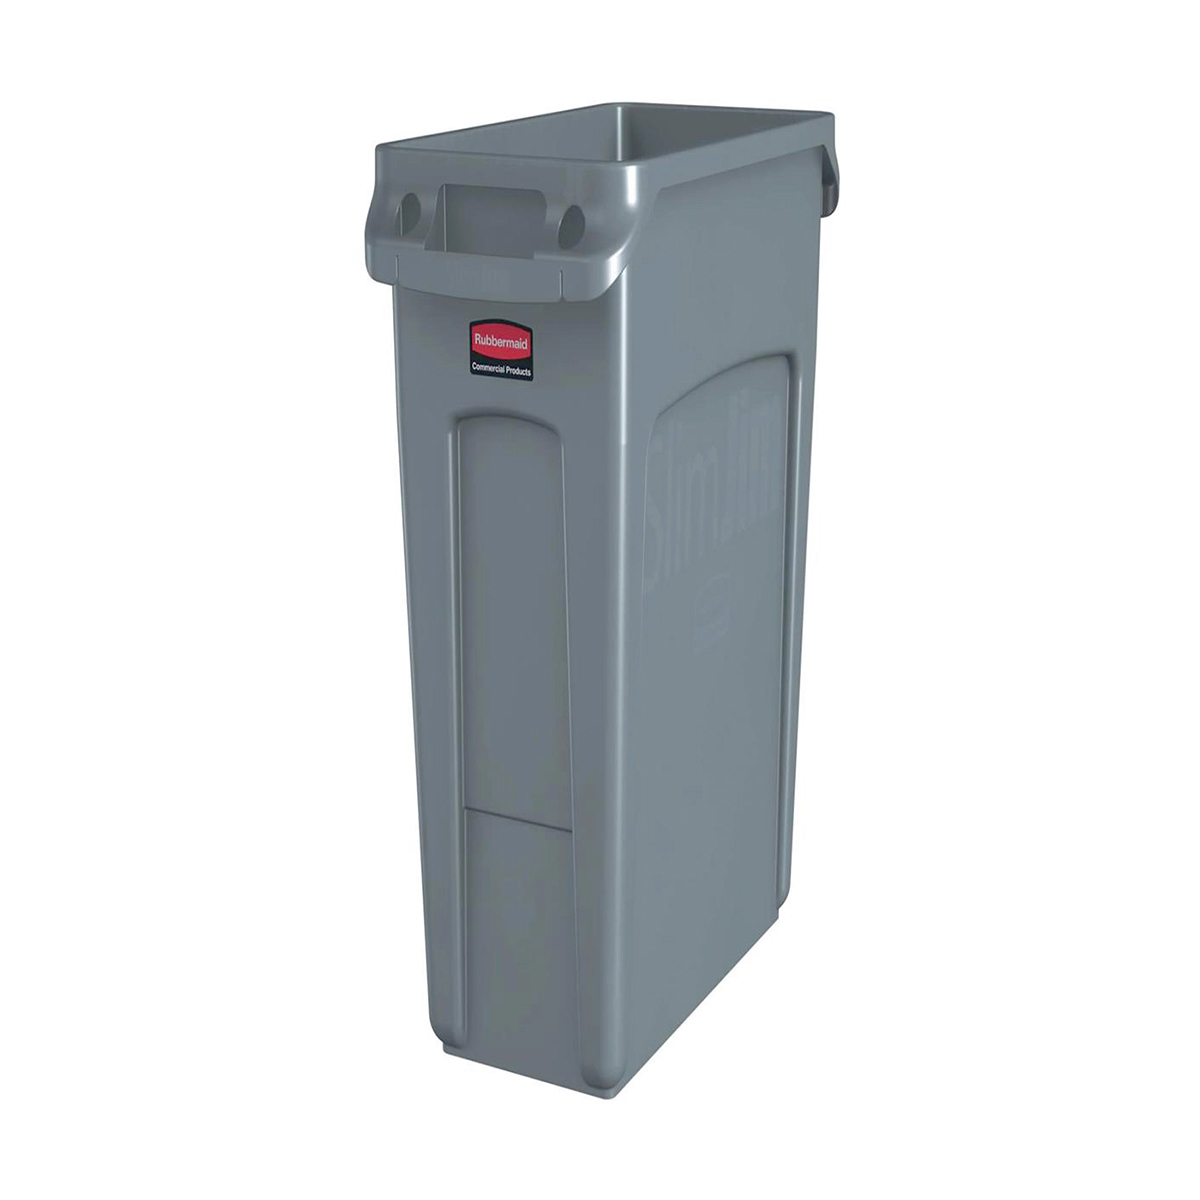 Rubbermaid Slim Jim Recycling Container Bin 60 Litre Capacity 558x279x635mm Grey Ref 1971258